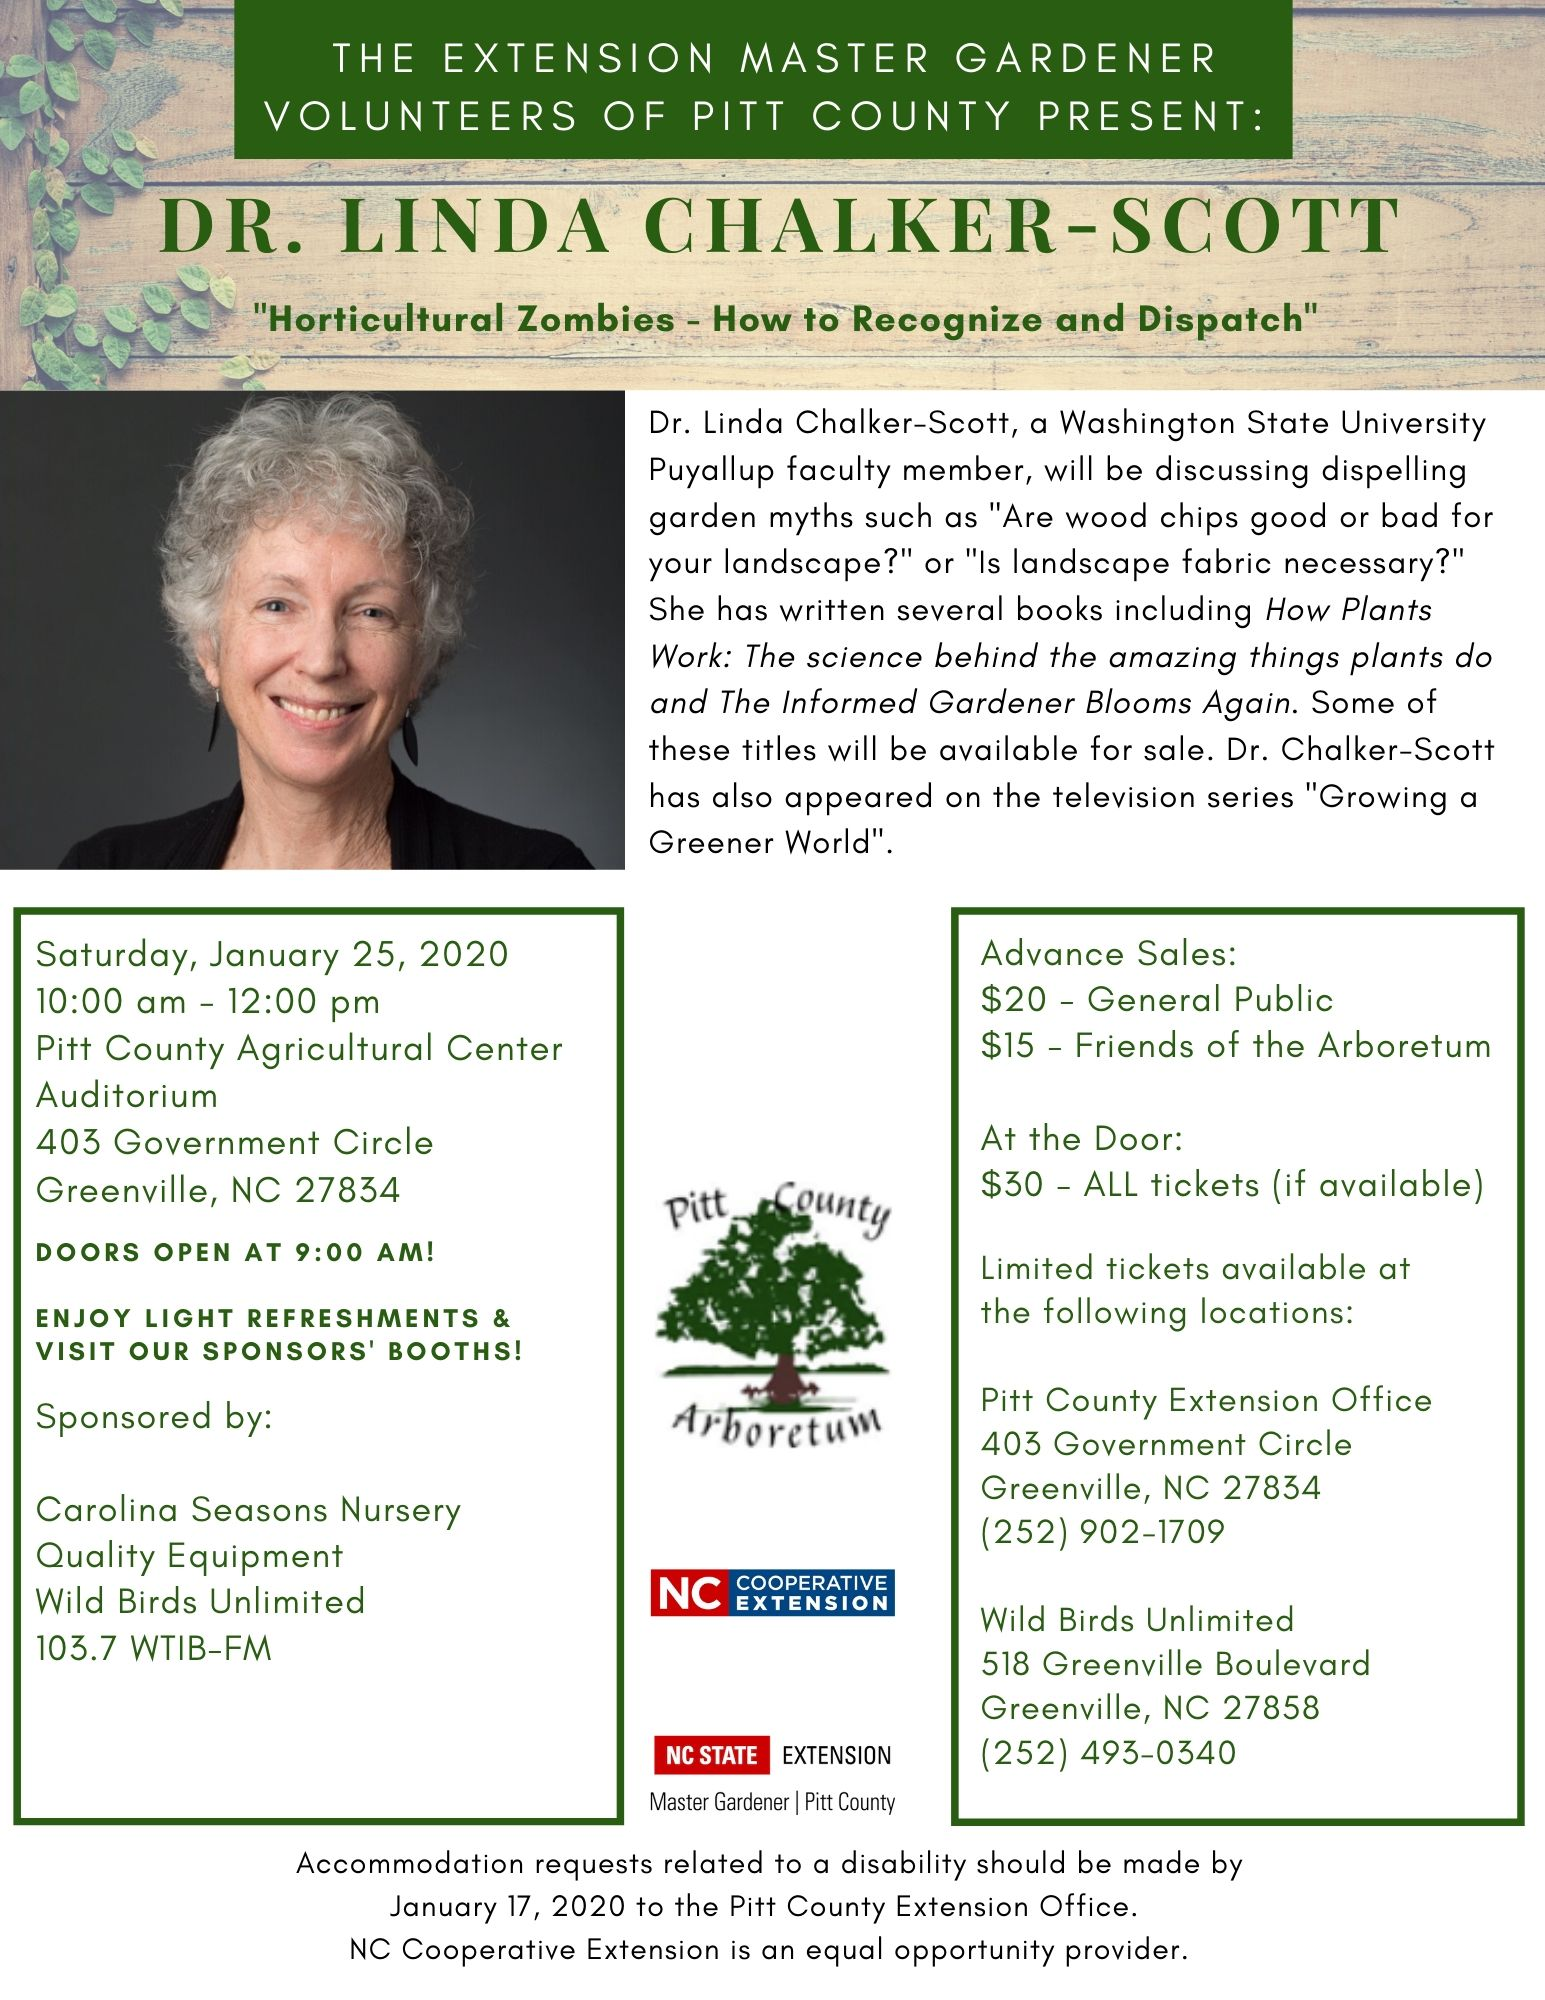 Winter Garden Seminar with Dr. Linda Chalker-Scott at Pitt County Arboretum